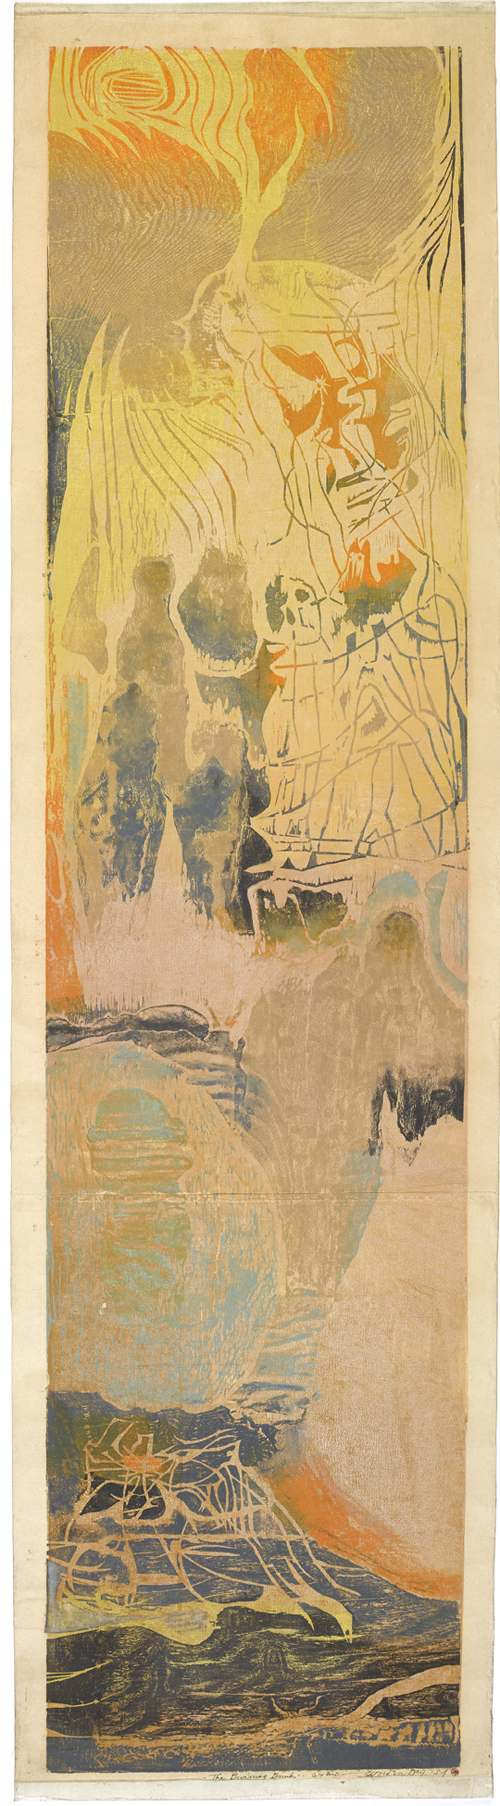 Figure 27. Worden Day, The Burning Bush (1954) Woodcut in color 131.4 x 30.5 cm (51 3/4 x 12 in.) Brooklyn Museum, Dick S. Ramsay Fund, 59.16 Brooklyn Museum photograph Courtesy of the estate of the artist